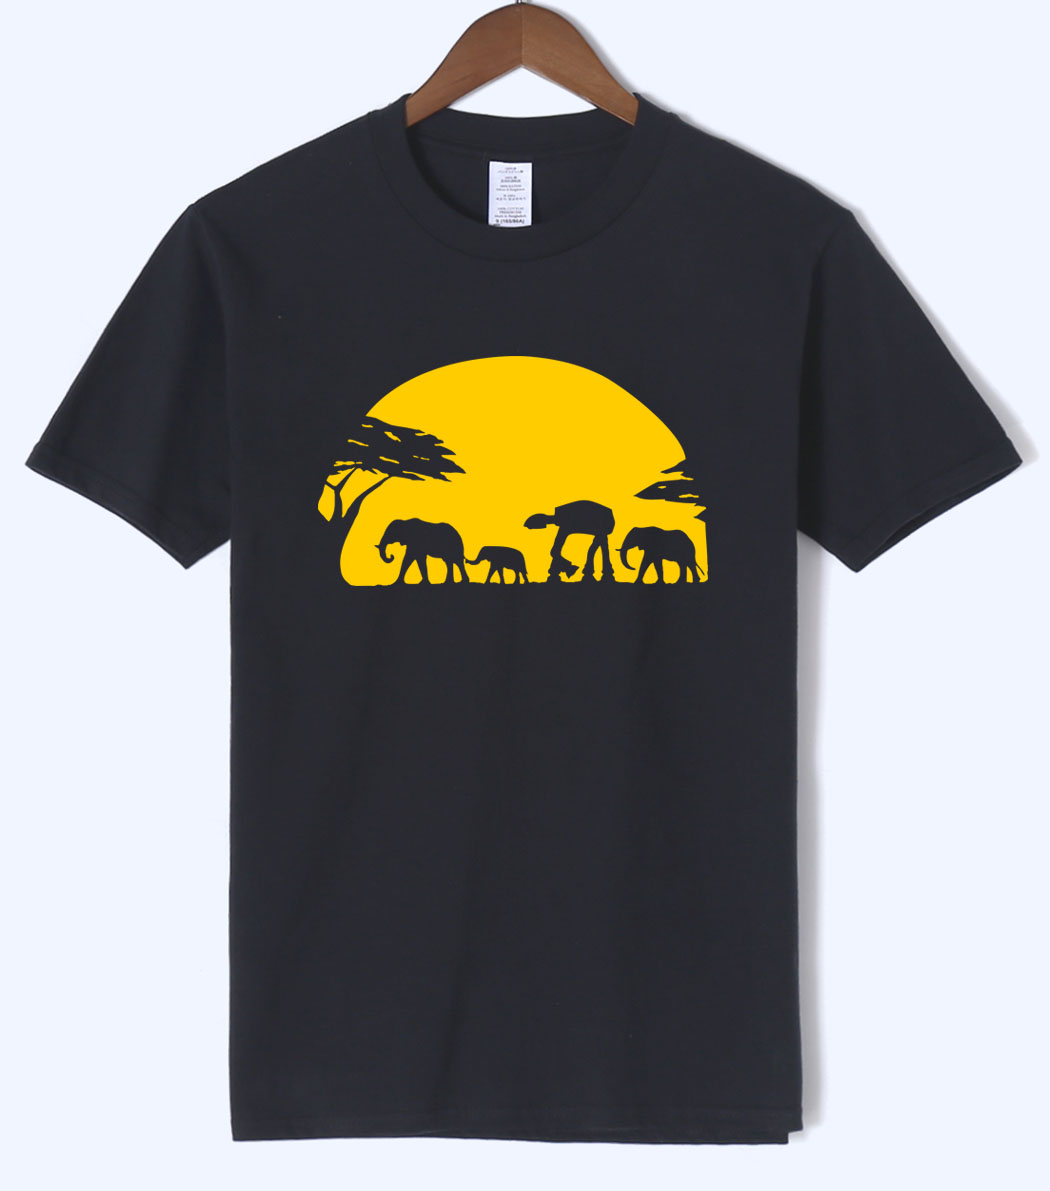 Hot Sale Elephants And Imperial Walker Across African Safari T Shirts 2018 Summer Men T Shirts 100% Cotton Short Sleeve T-Shirts